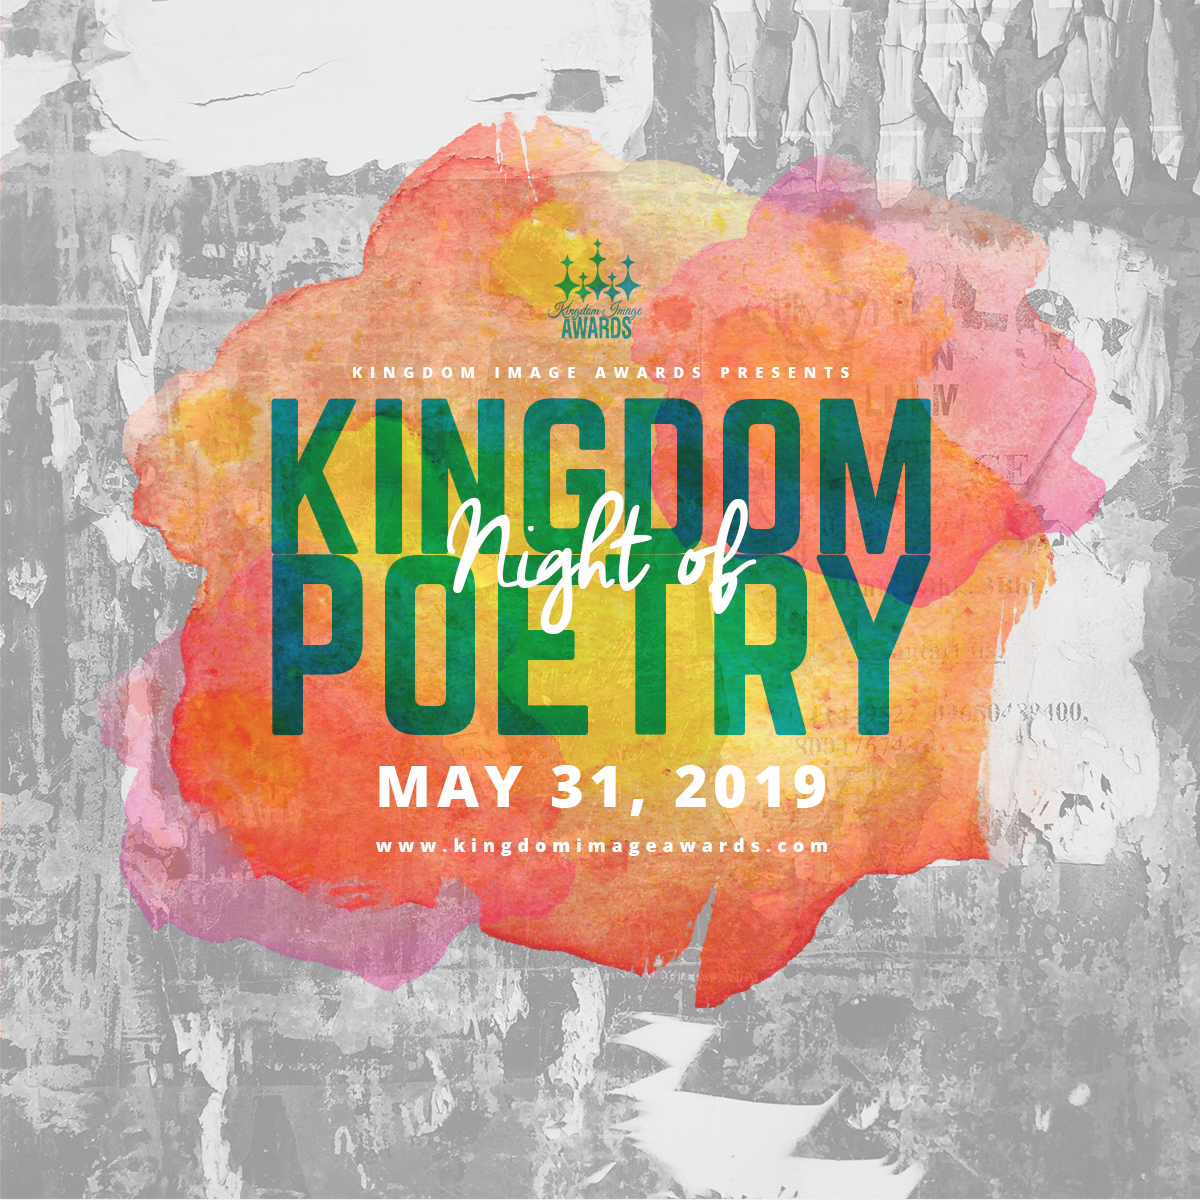 Kingdom Night of Poetry